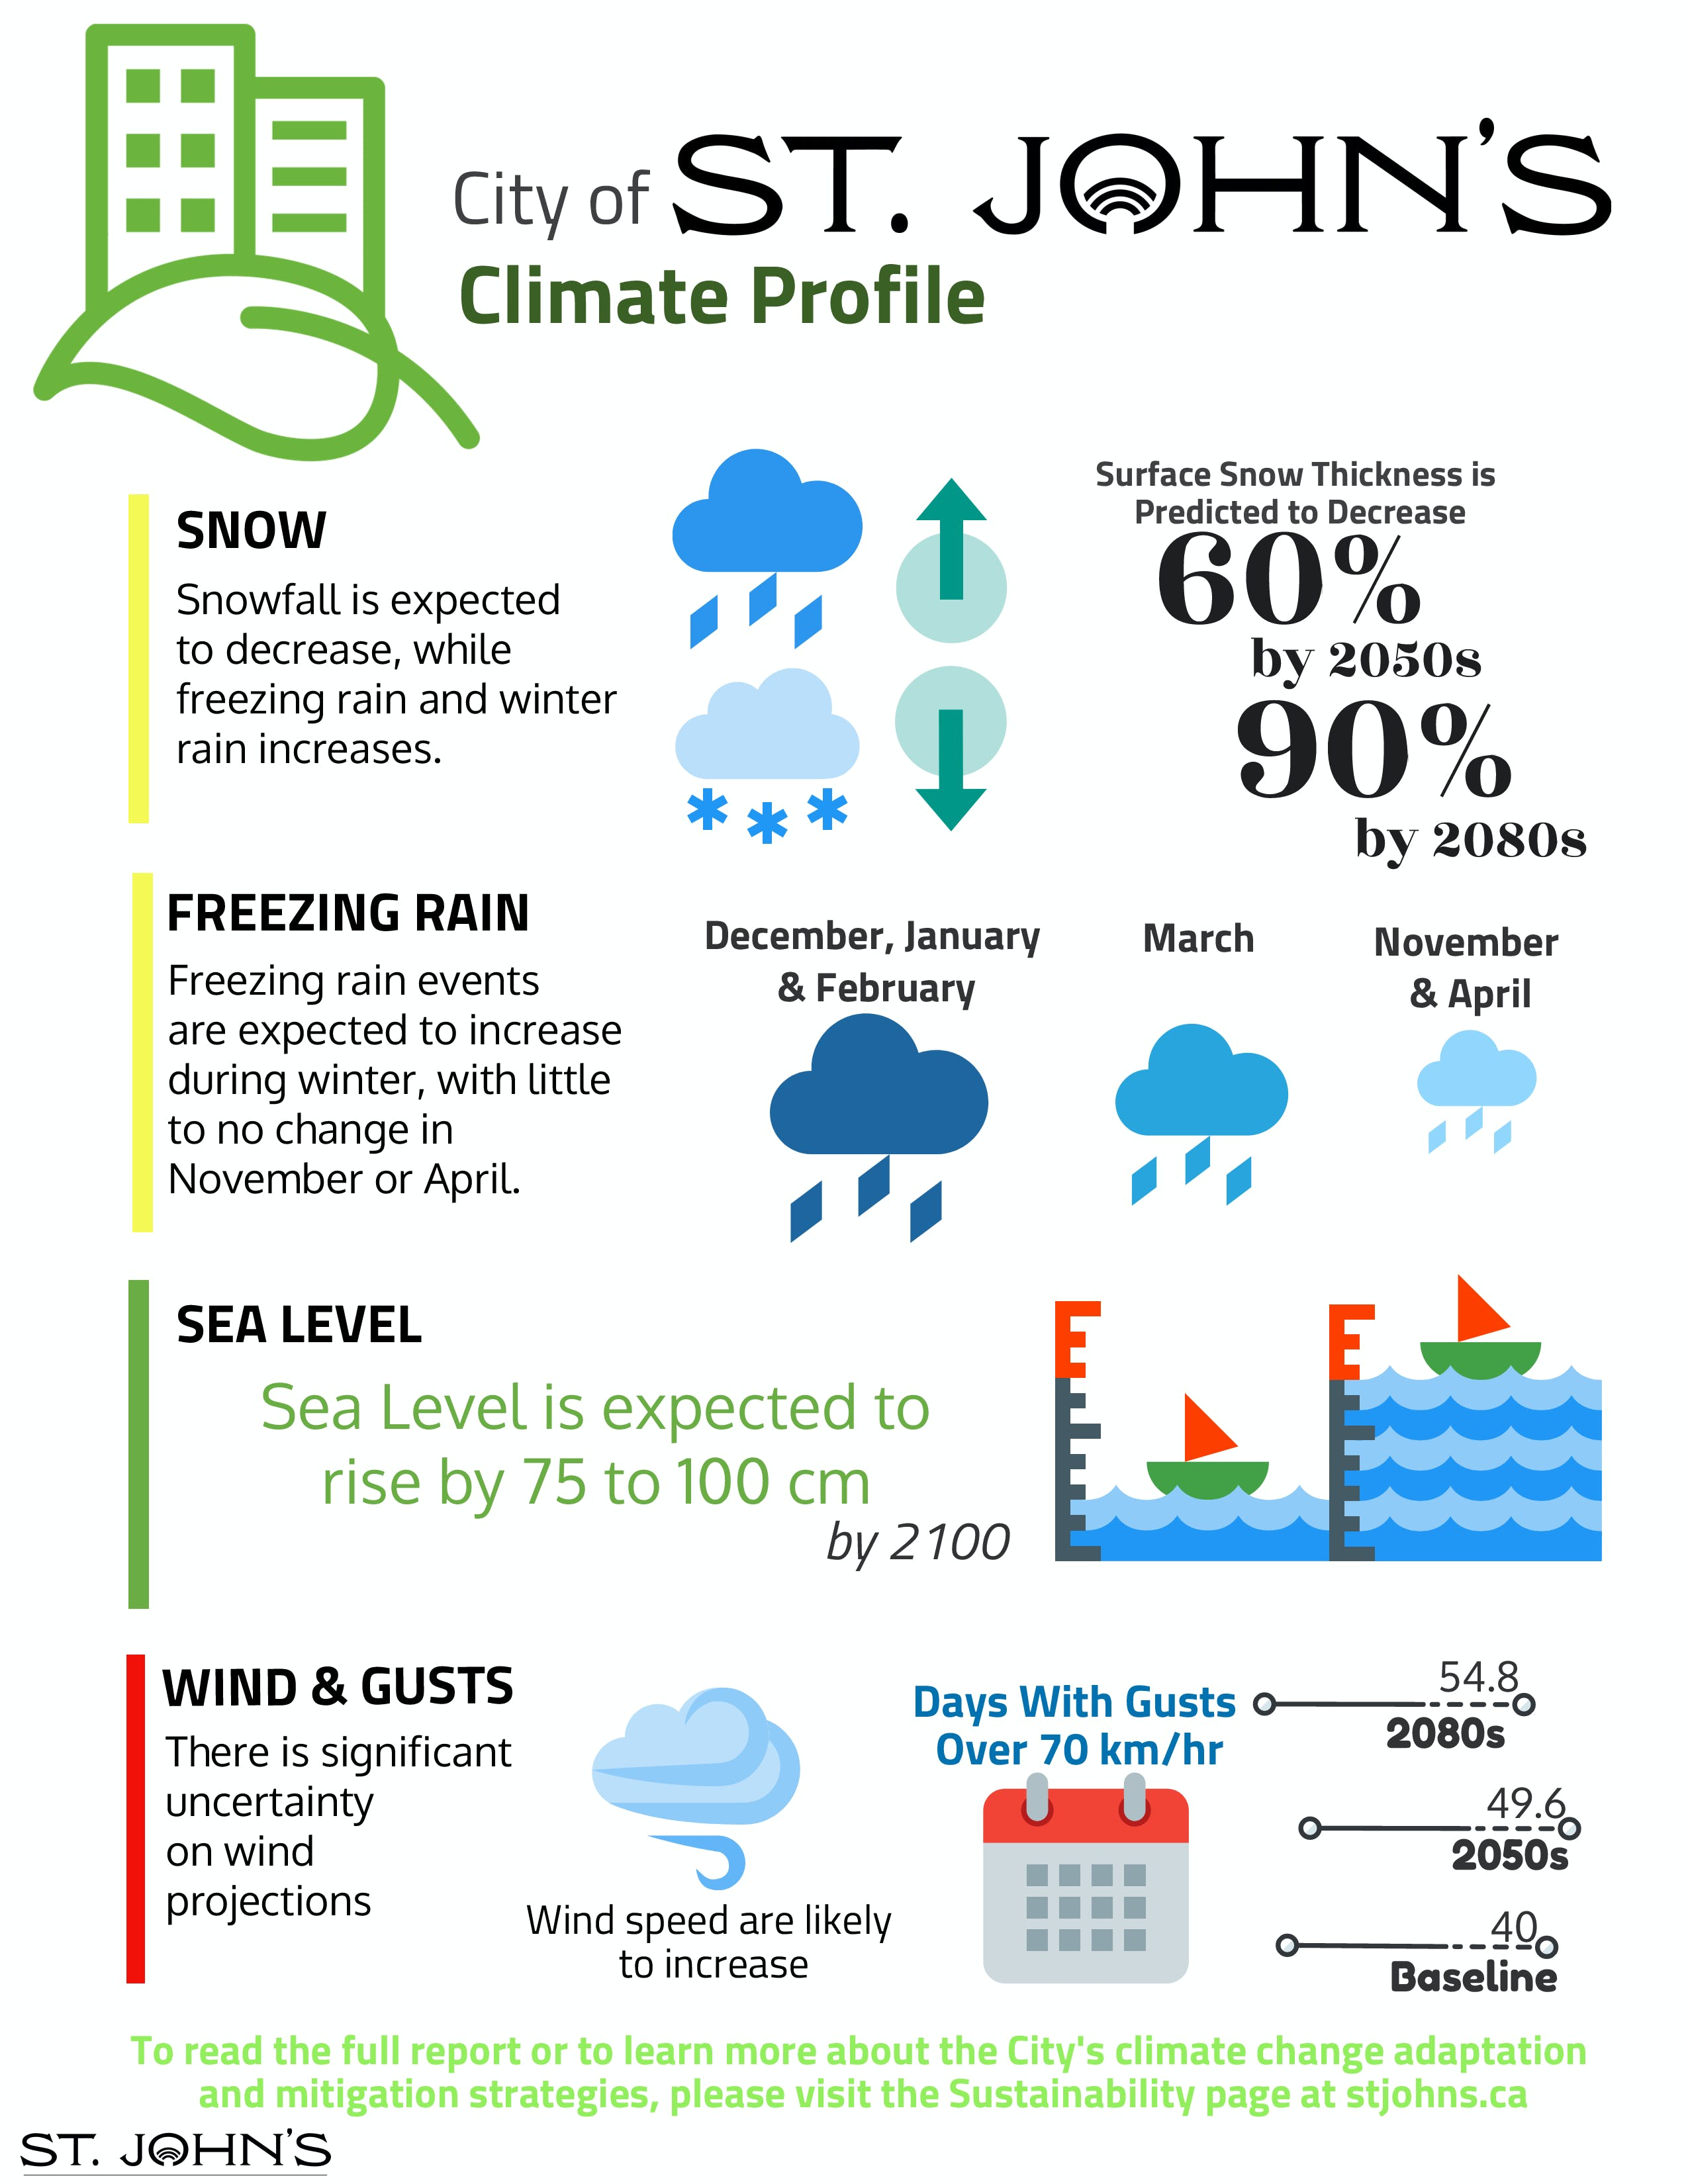 St. John's Climate Profile - Other Events